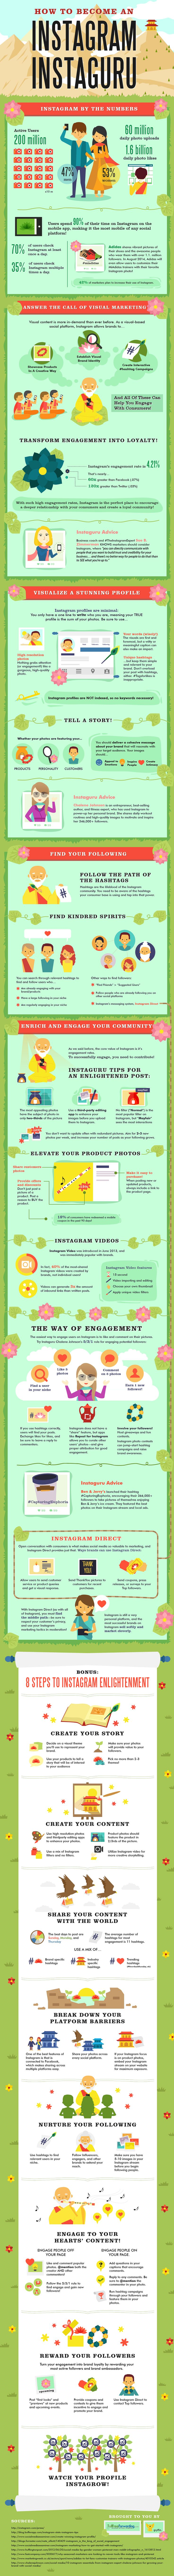 How to Become an #Instagram Instaguru #infographic #Infografía